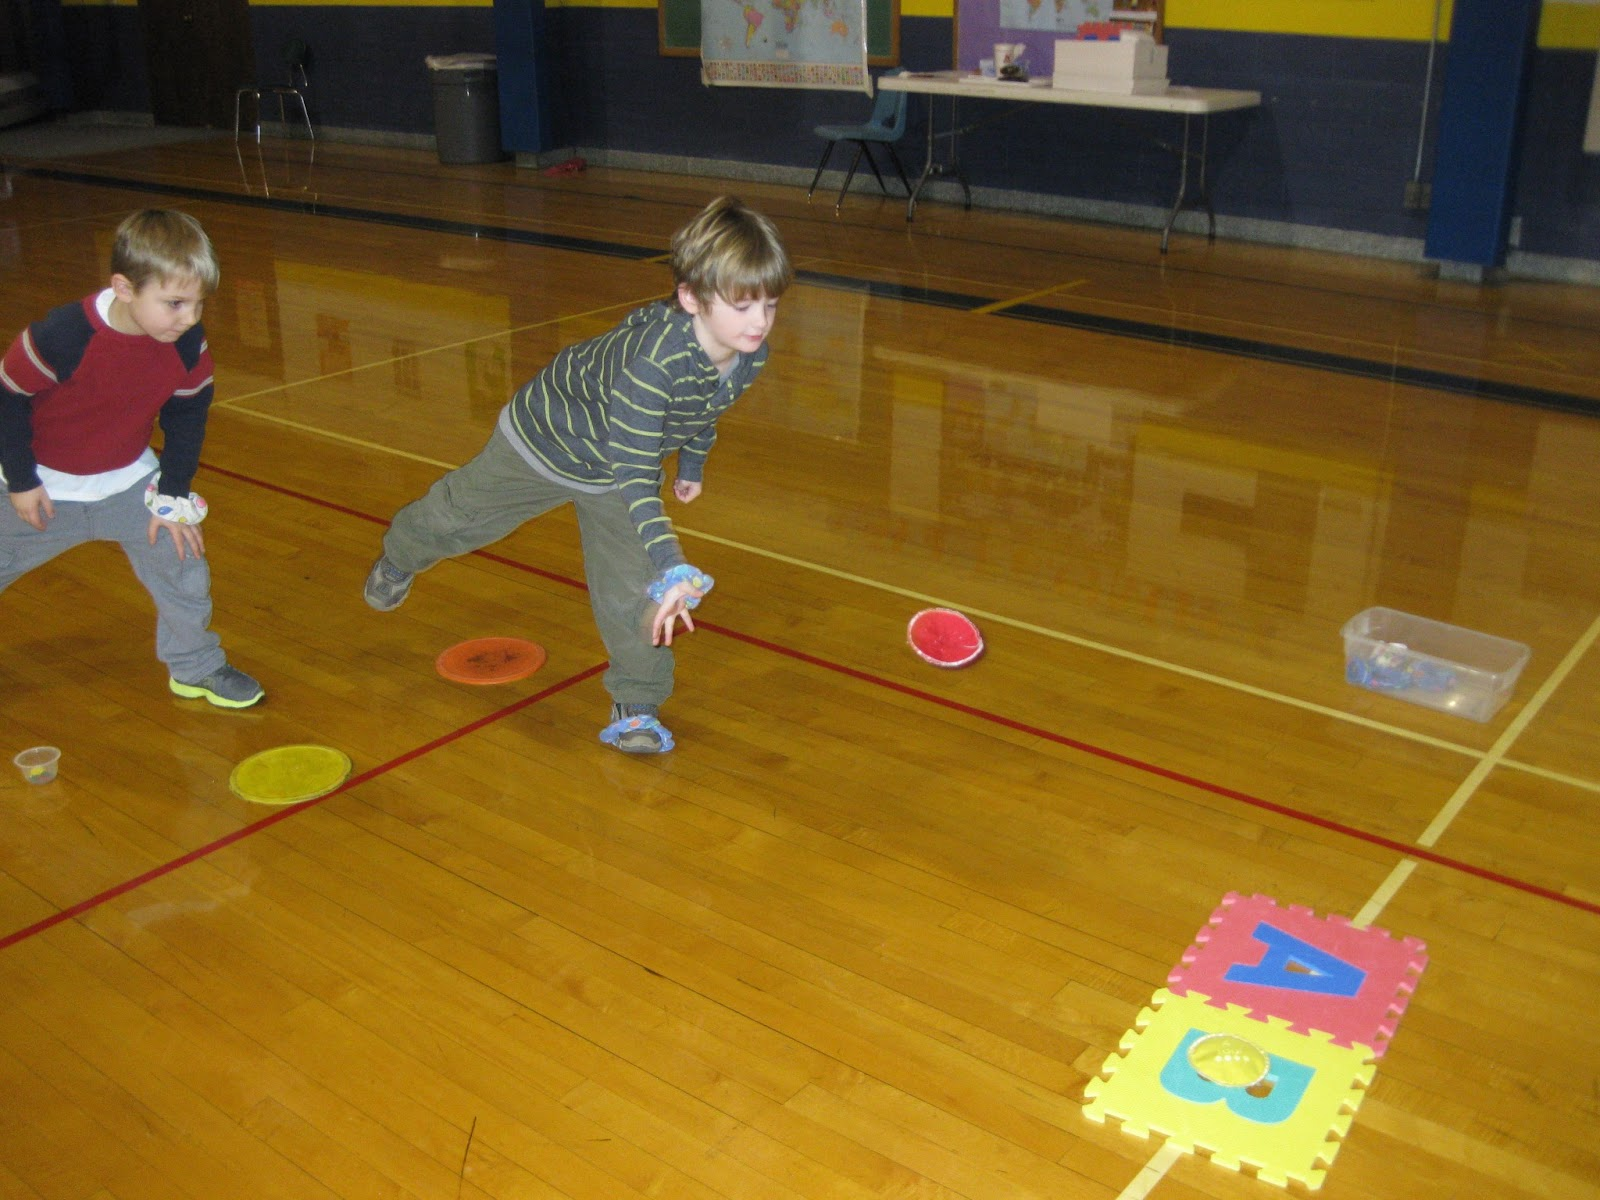 Why do we need physical education in kindergarten